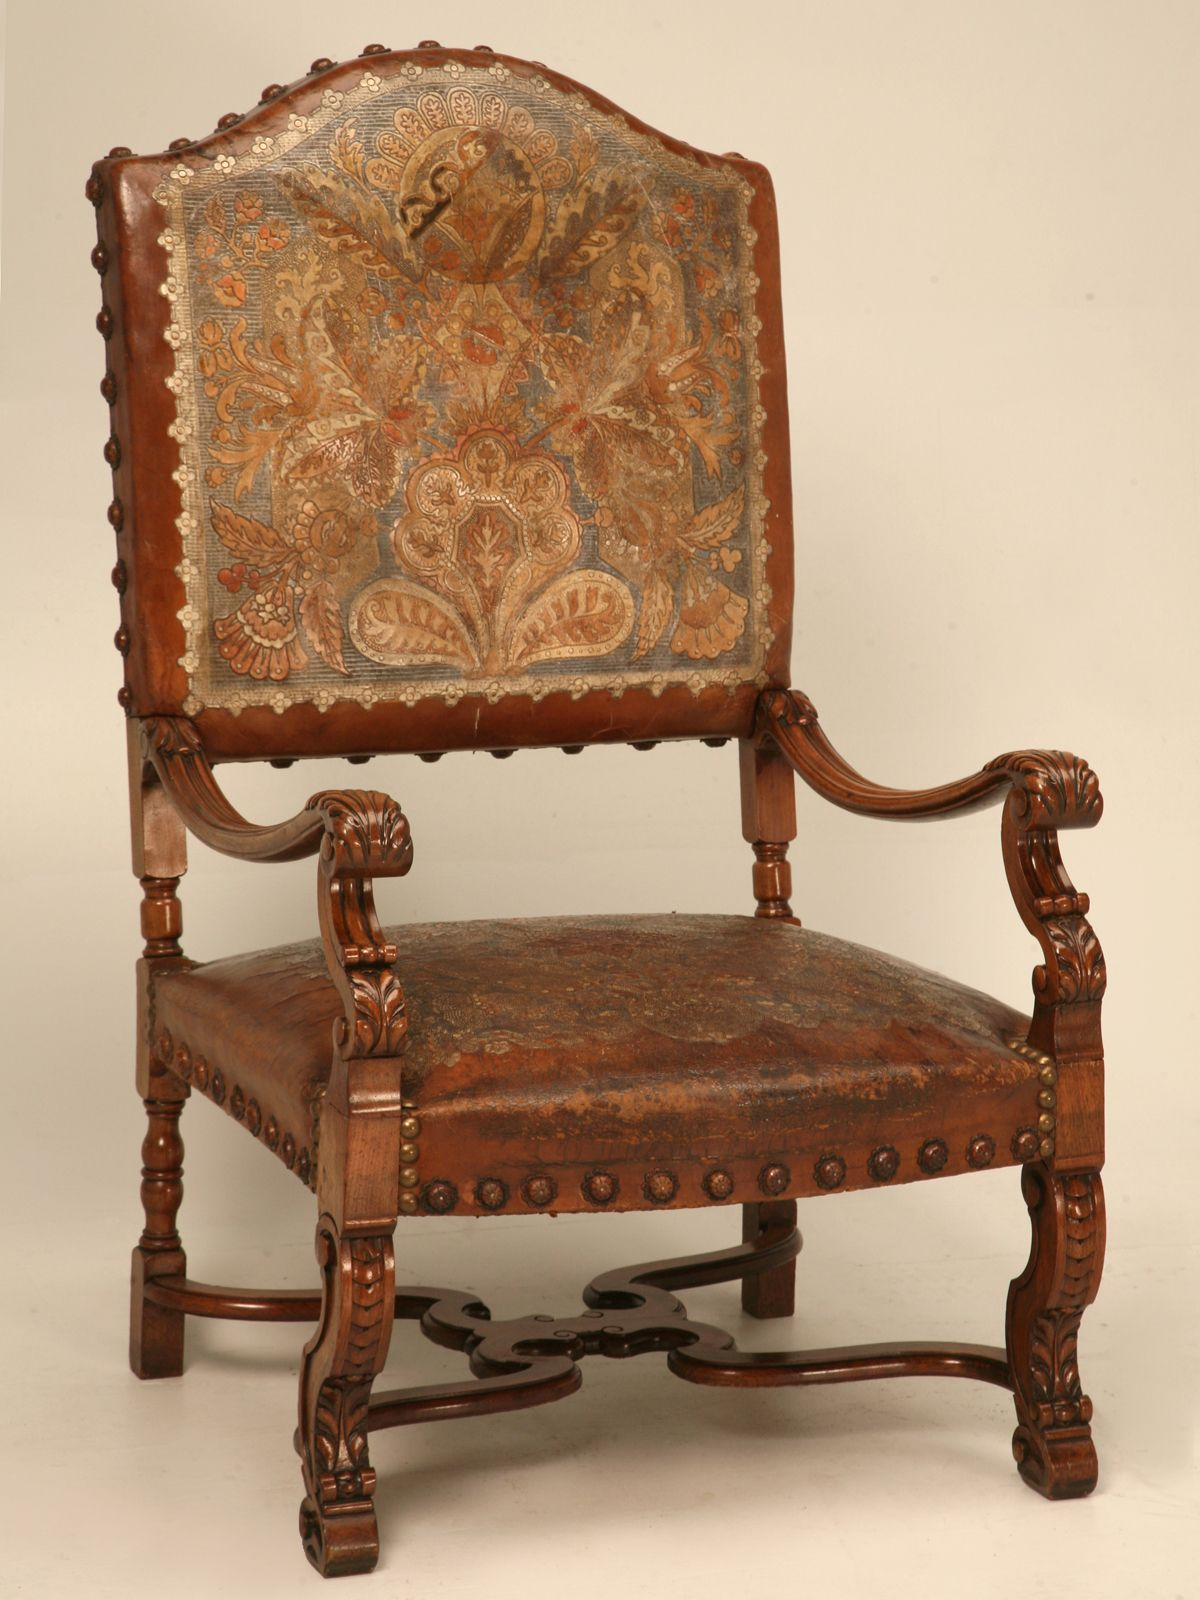 Carved Antique Throne Chair with Original Tooled Leather